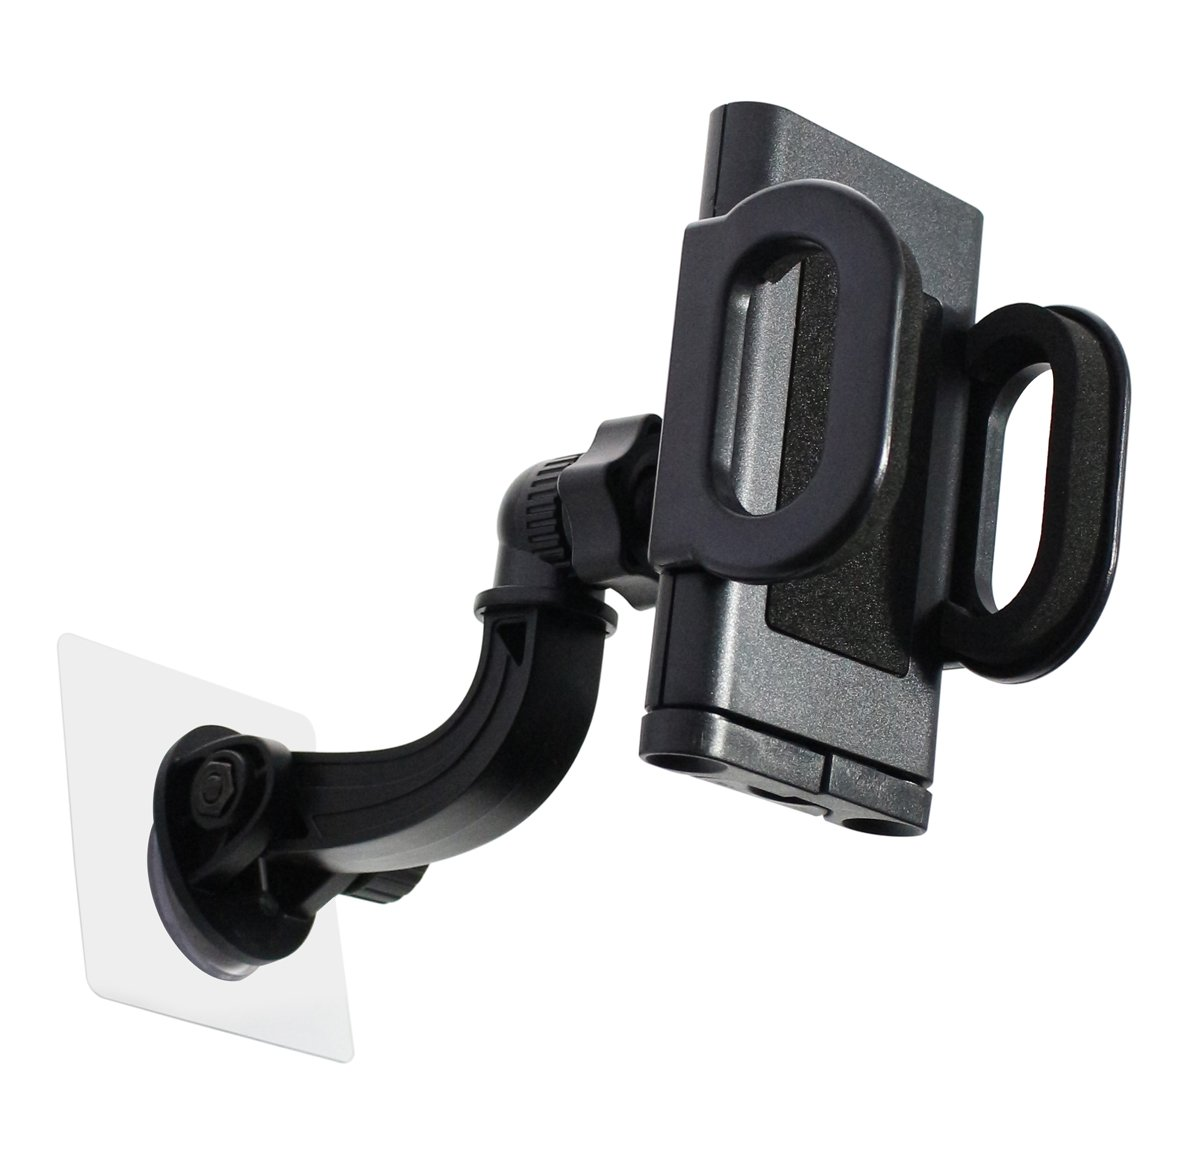 Traceless Adhesive Windshield Car Mount Cradle for Cell Phone and GPS 360 Degree View Adjusting